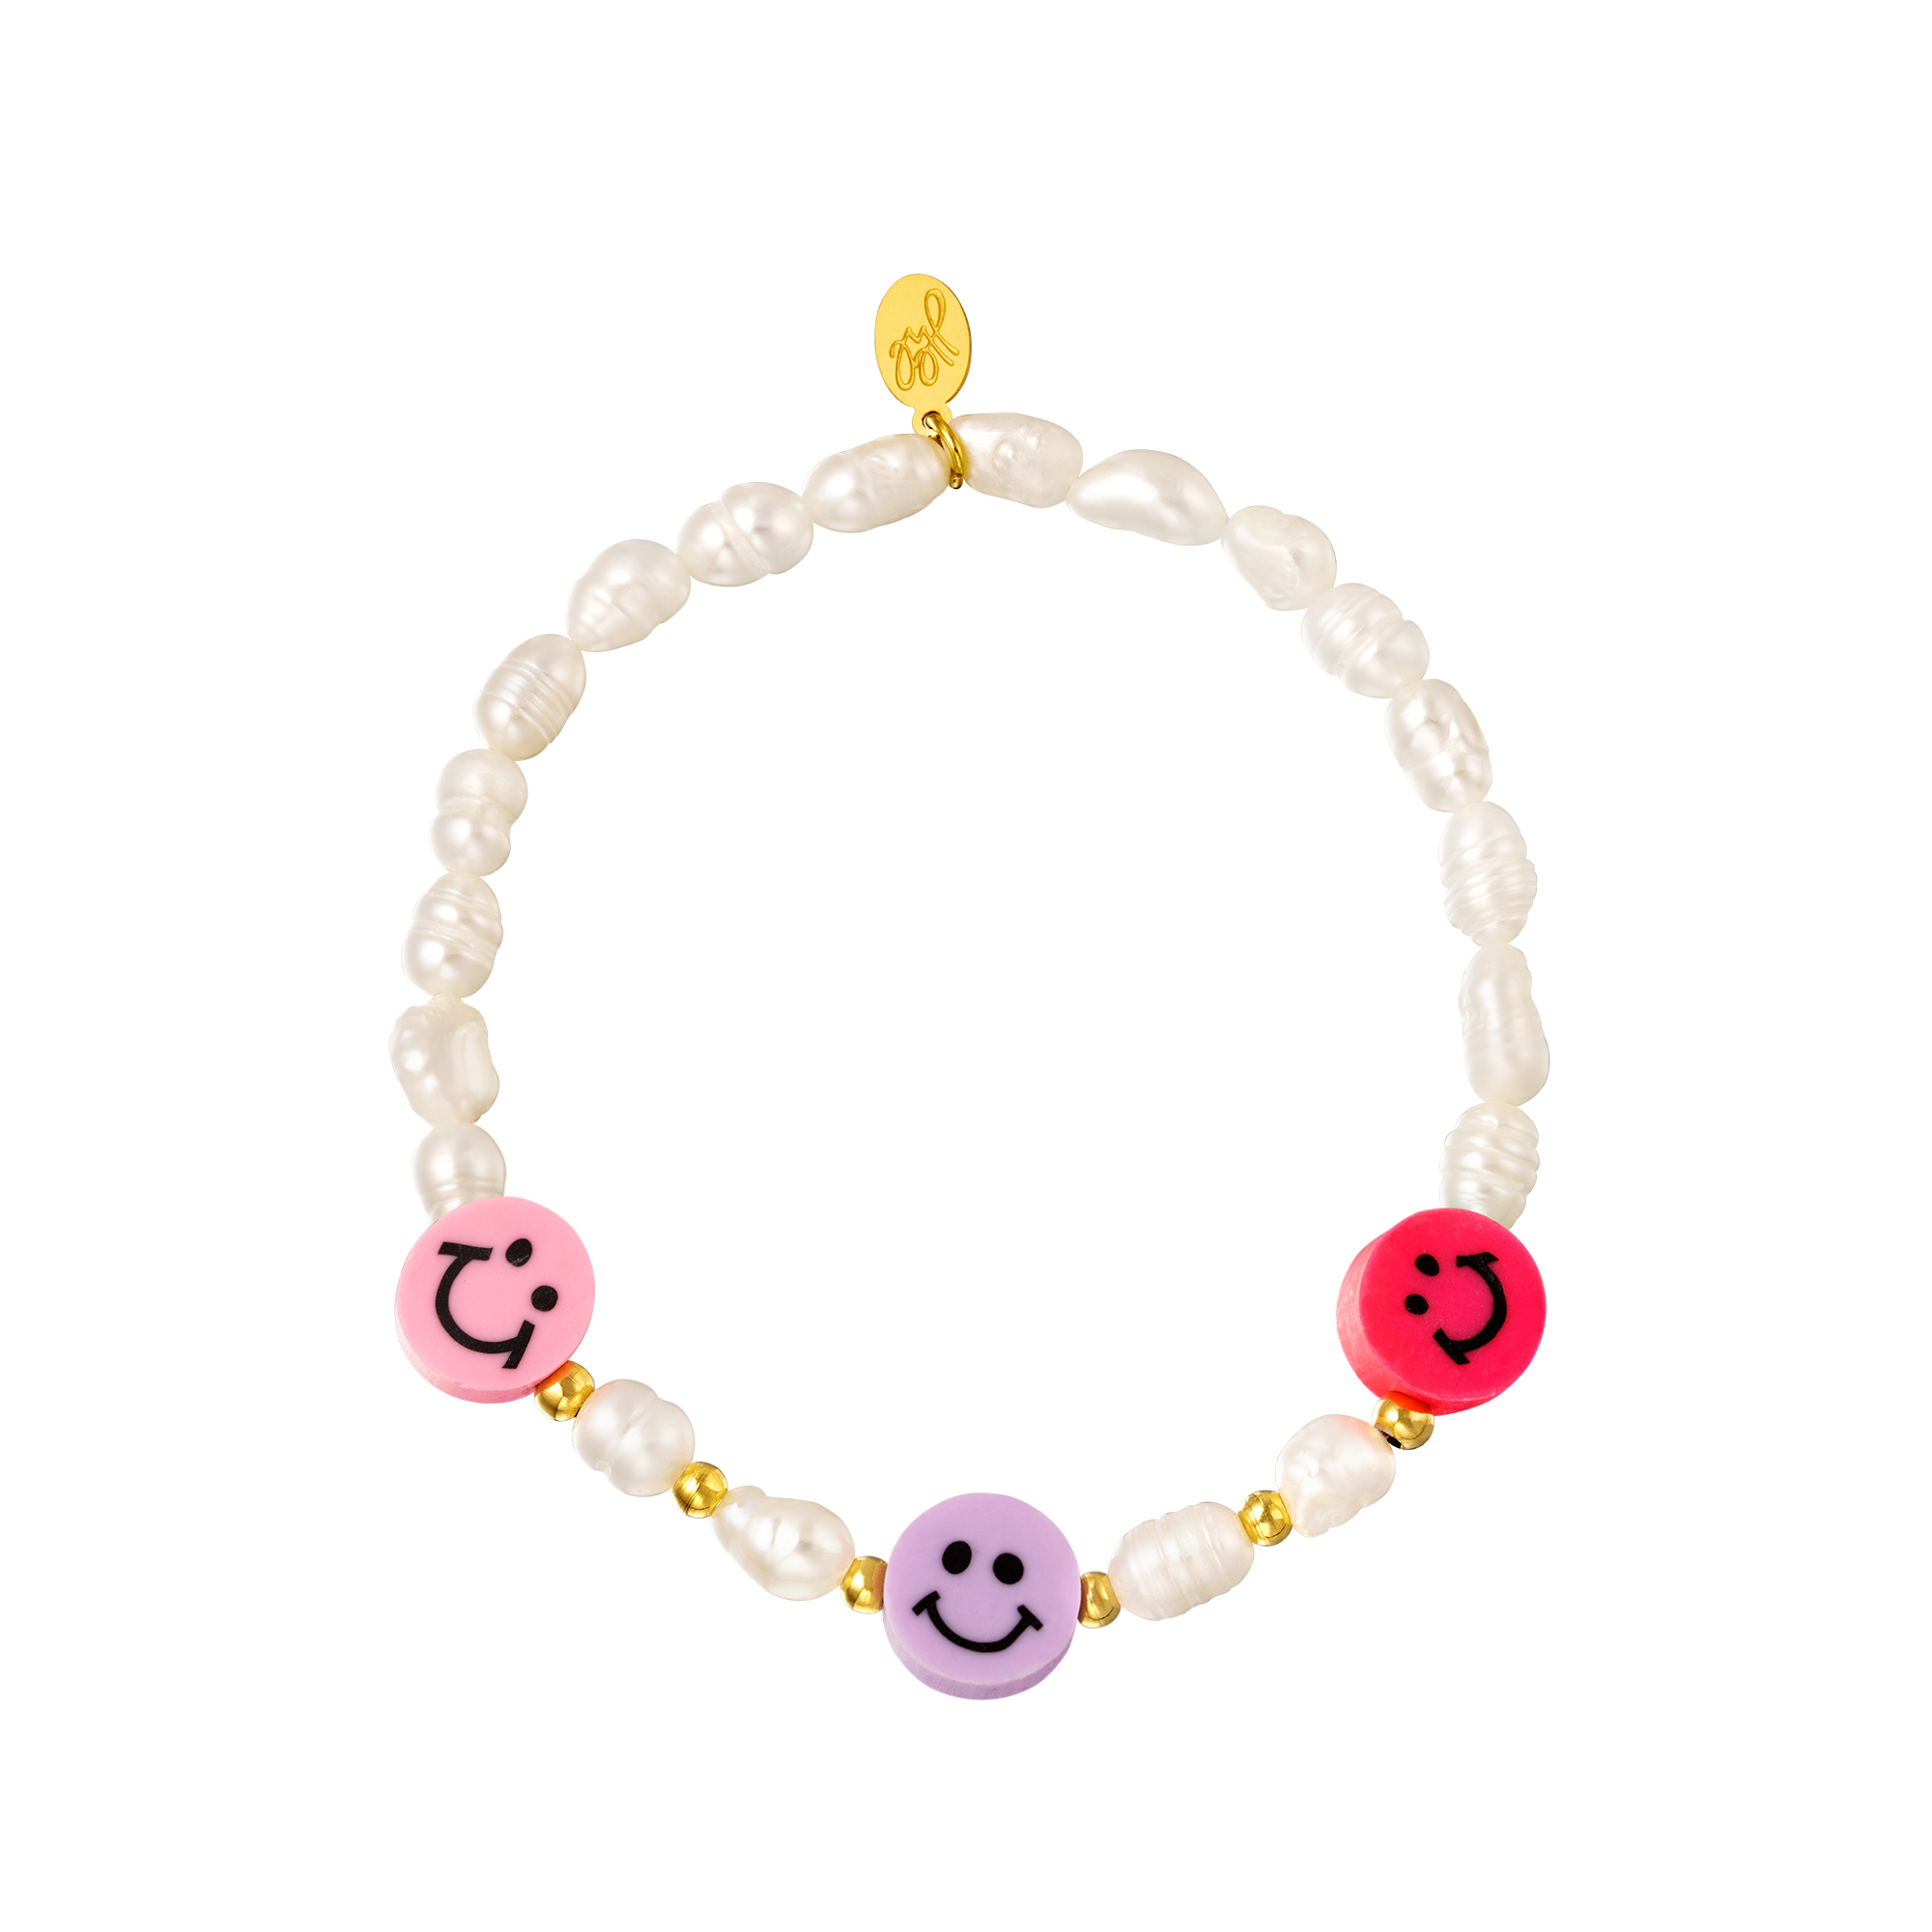 Bracelet smiley face and pearls